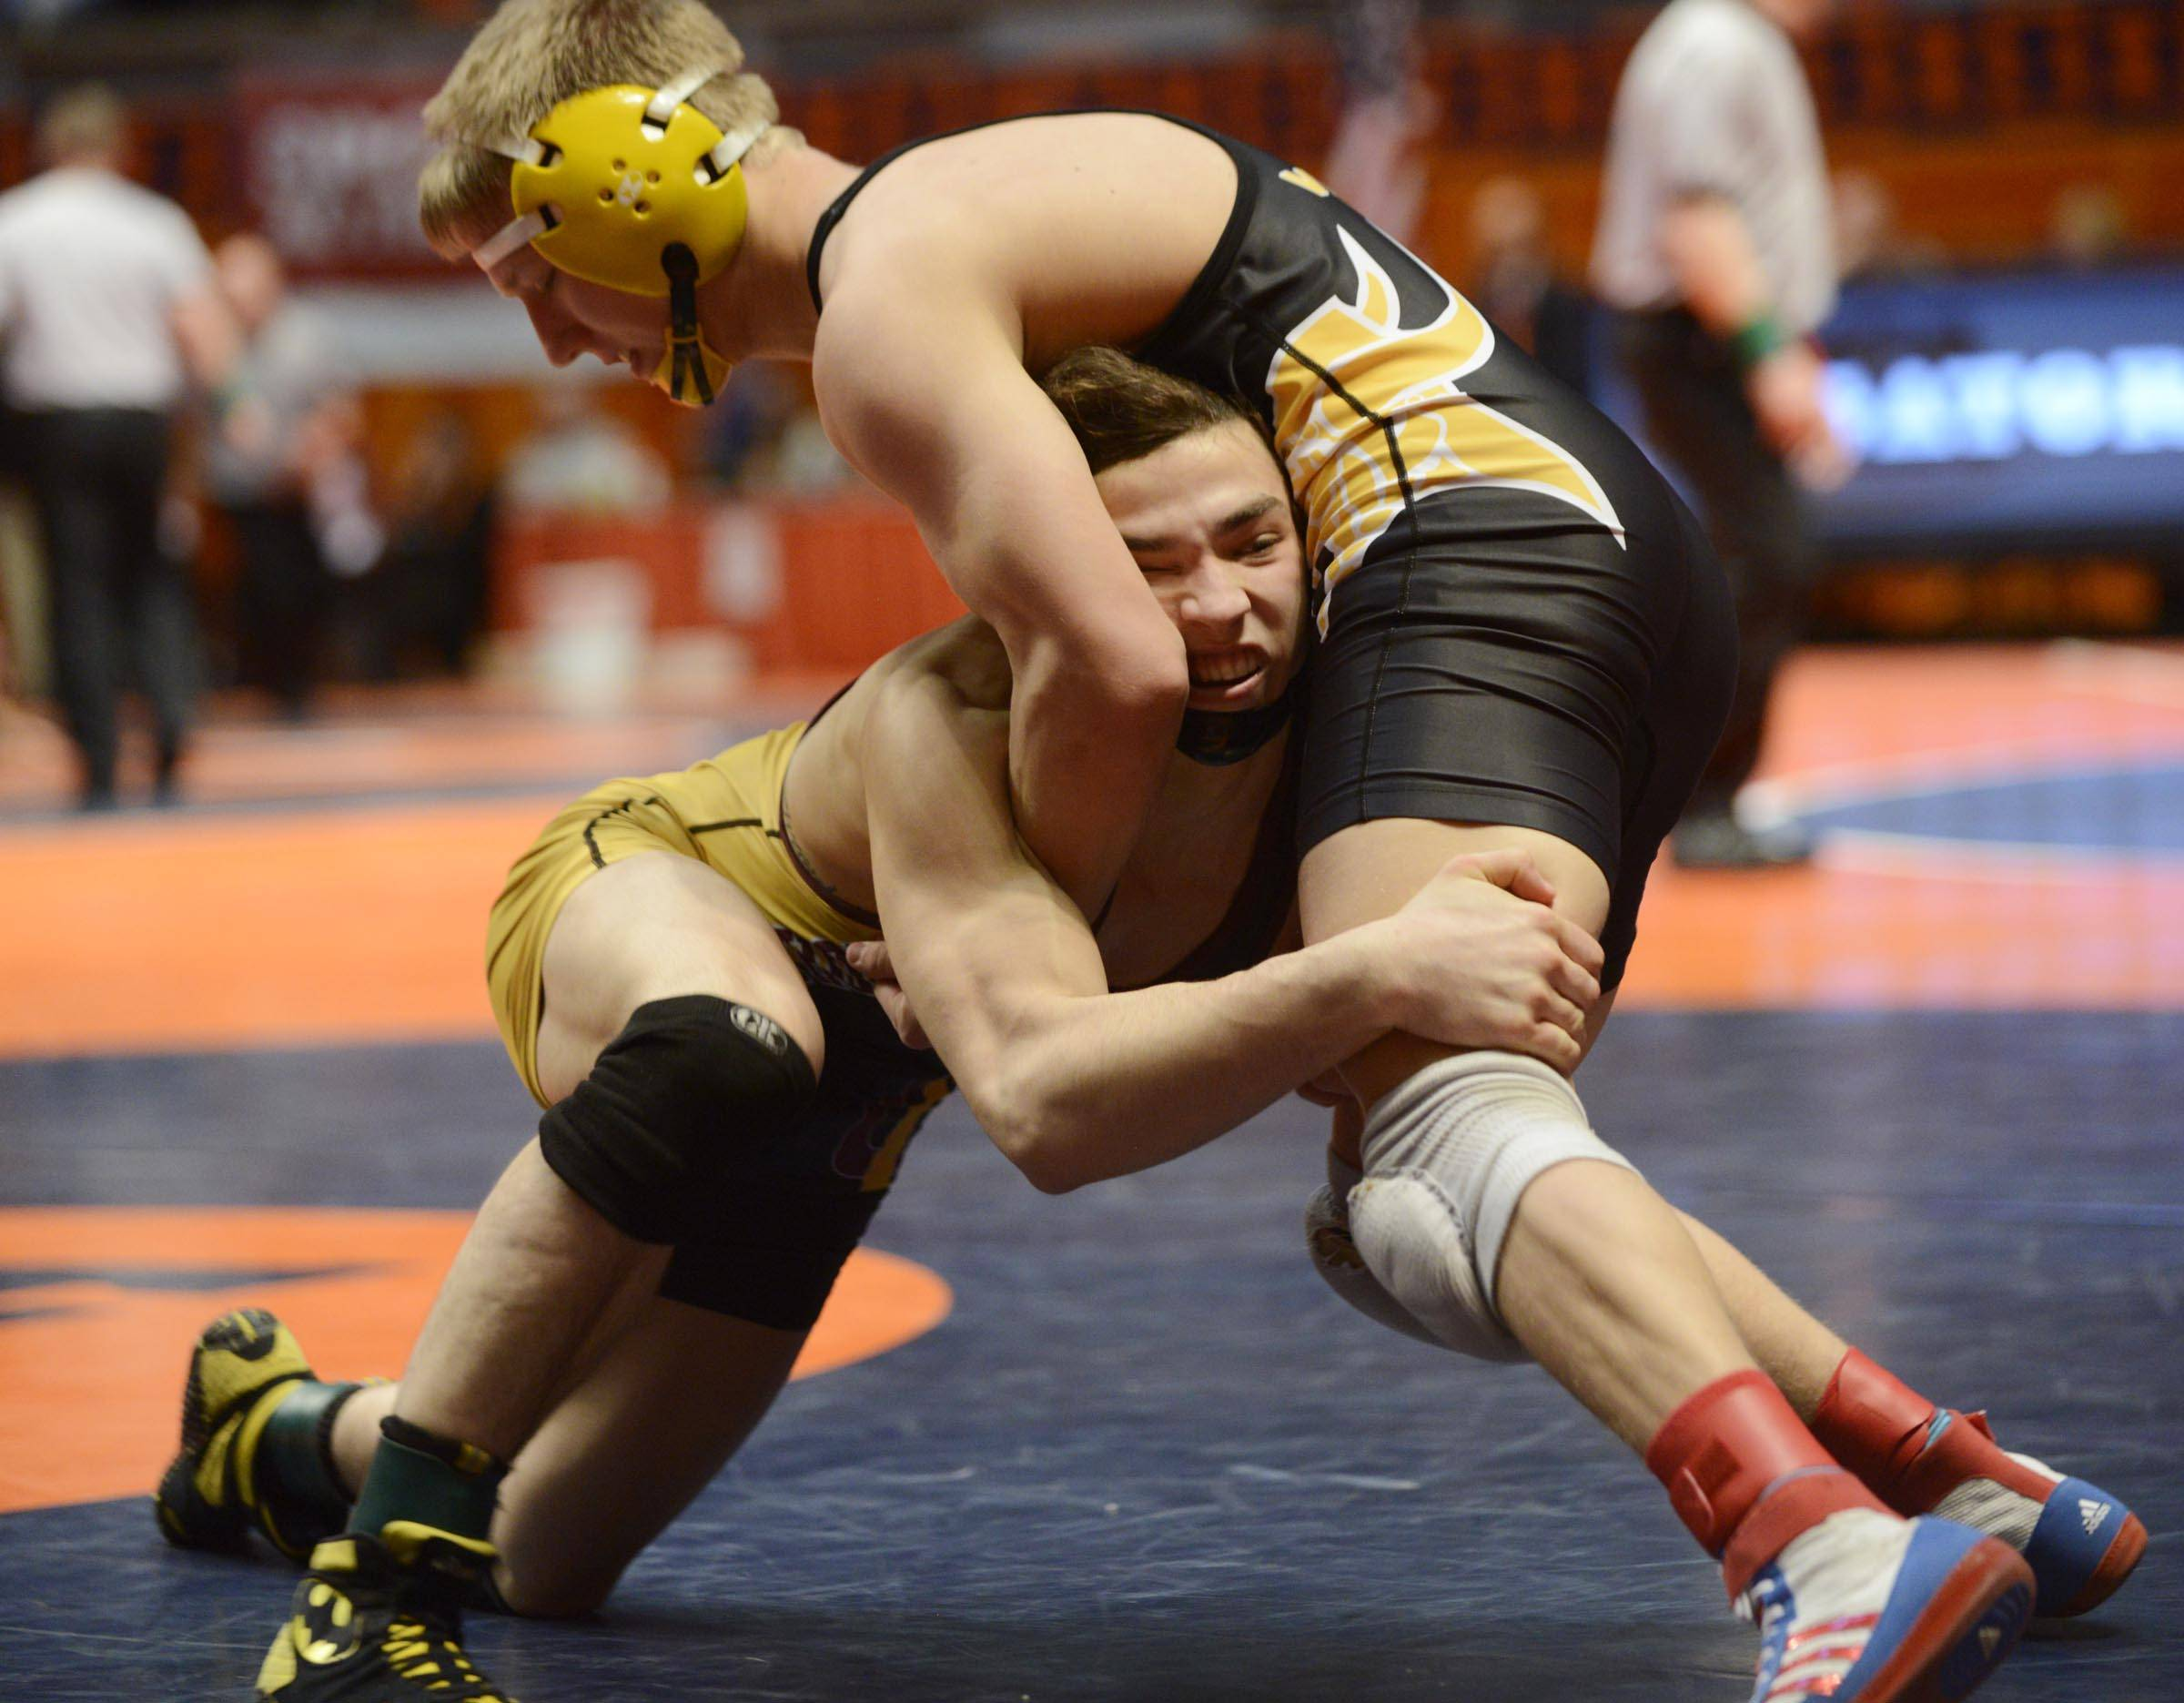 Vincent Turk of Montini High School charges into Johnathan Gahagan of St. Laurence High School Friday in the 138-pound weight class semifinals of the wrestling IHSA Class 2A state tournament at State Farm Center in Champaign.